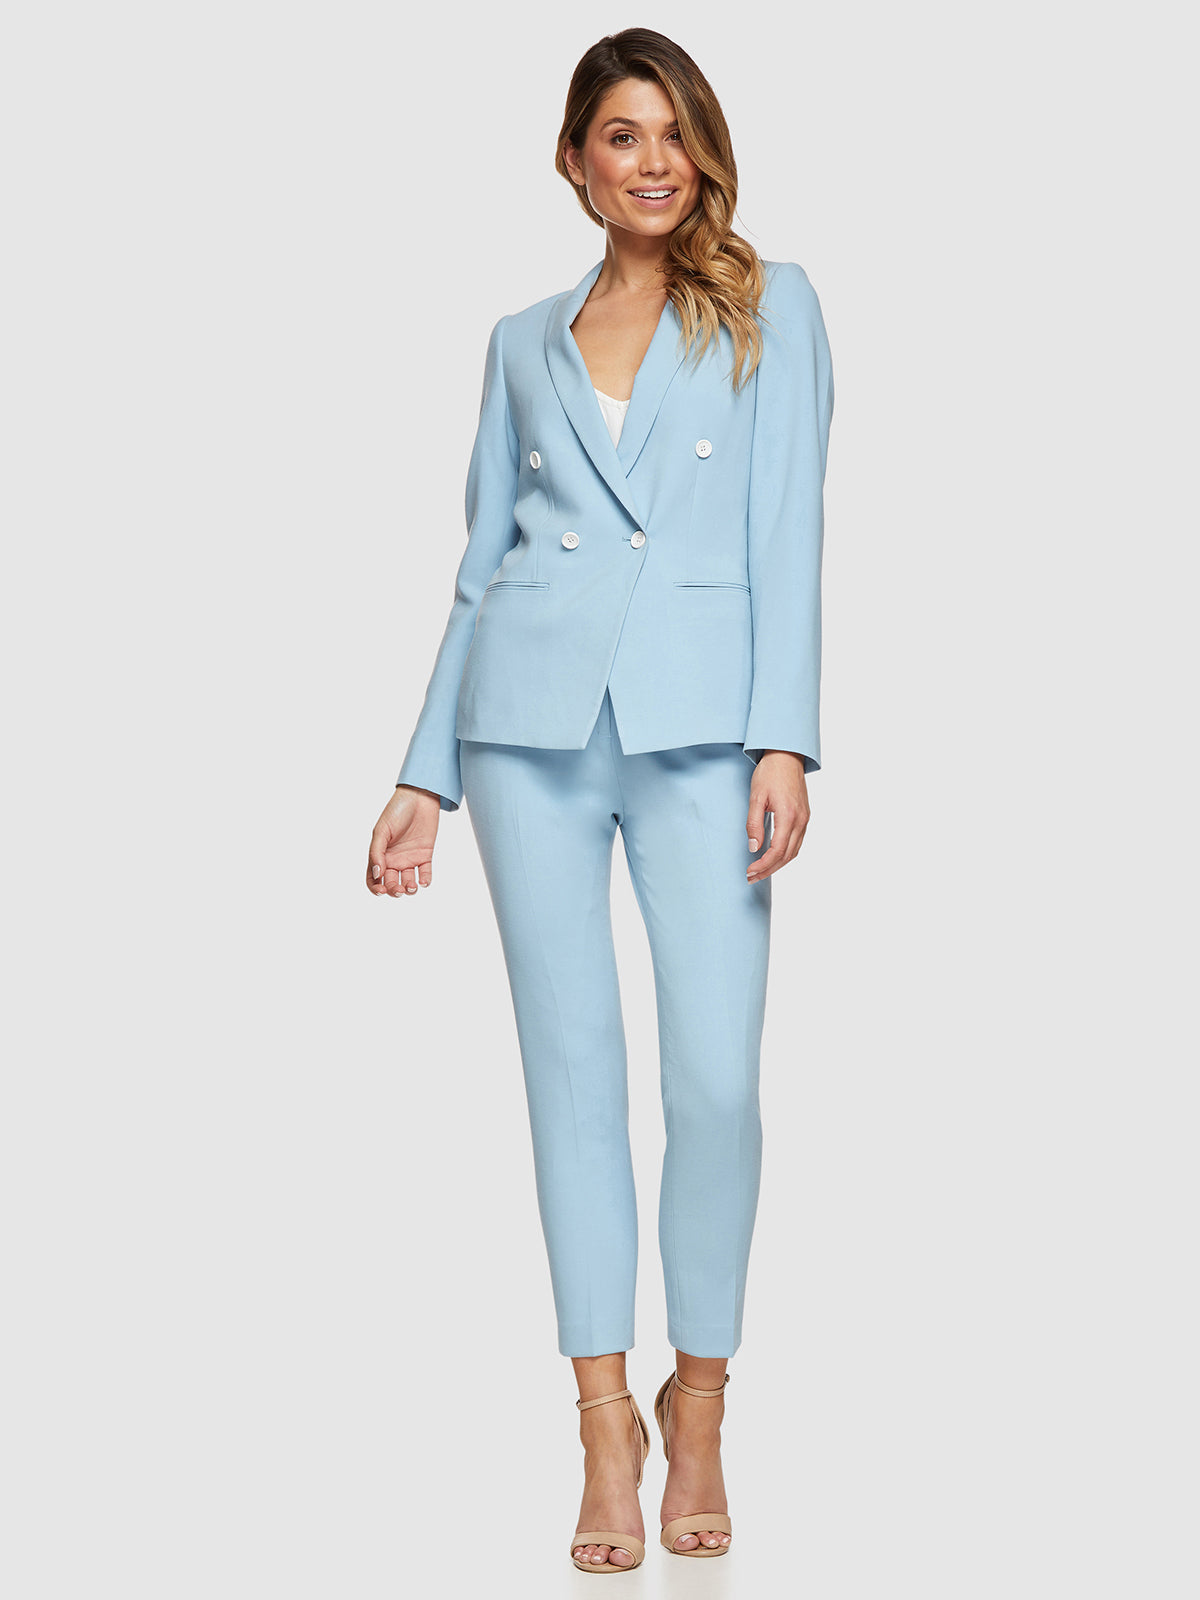 MIA SKY SUIT TROUSERS SKY BLUE